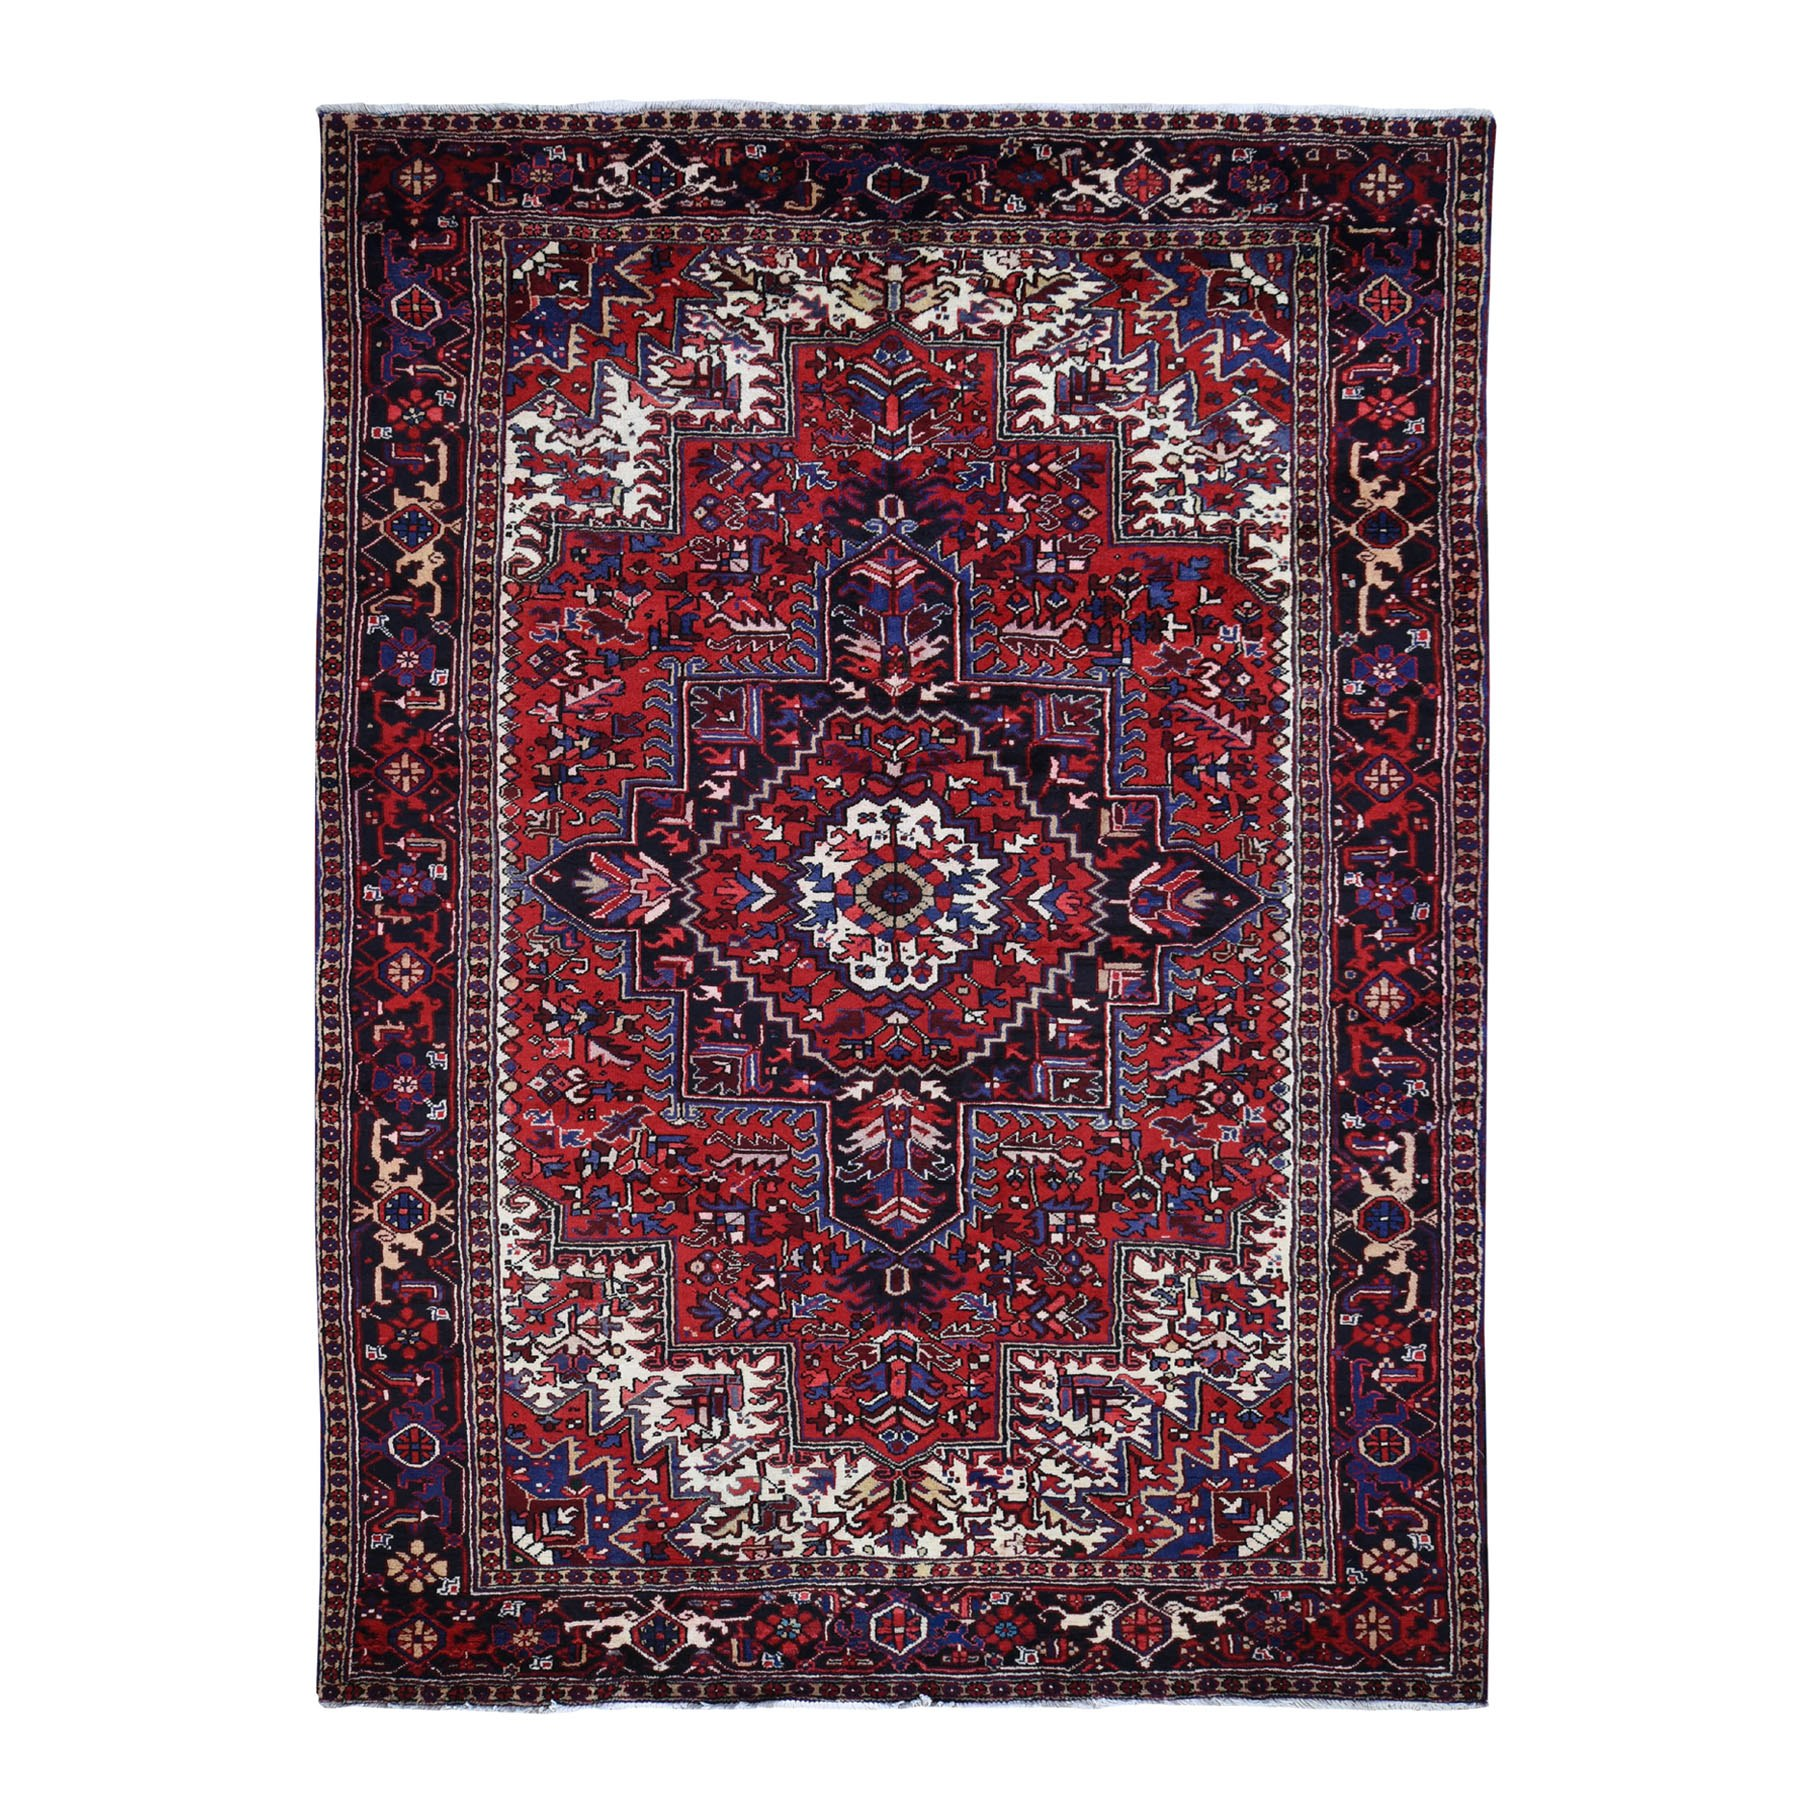 "7'9""x11' Red Semi Antique Heriz Good Condition Hand Woven Oriental Rug"